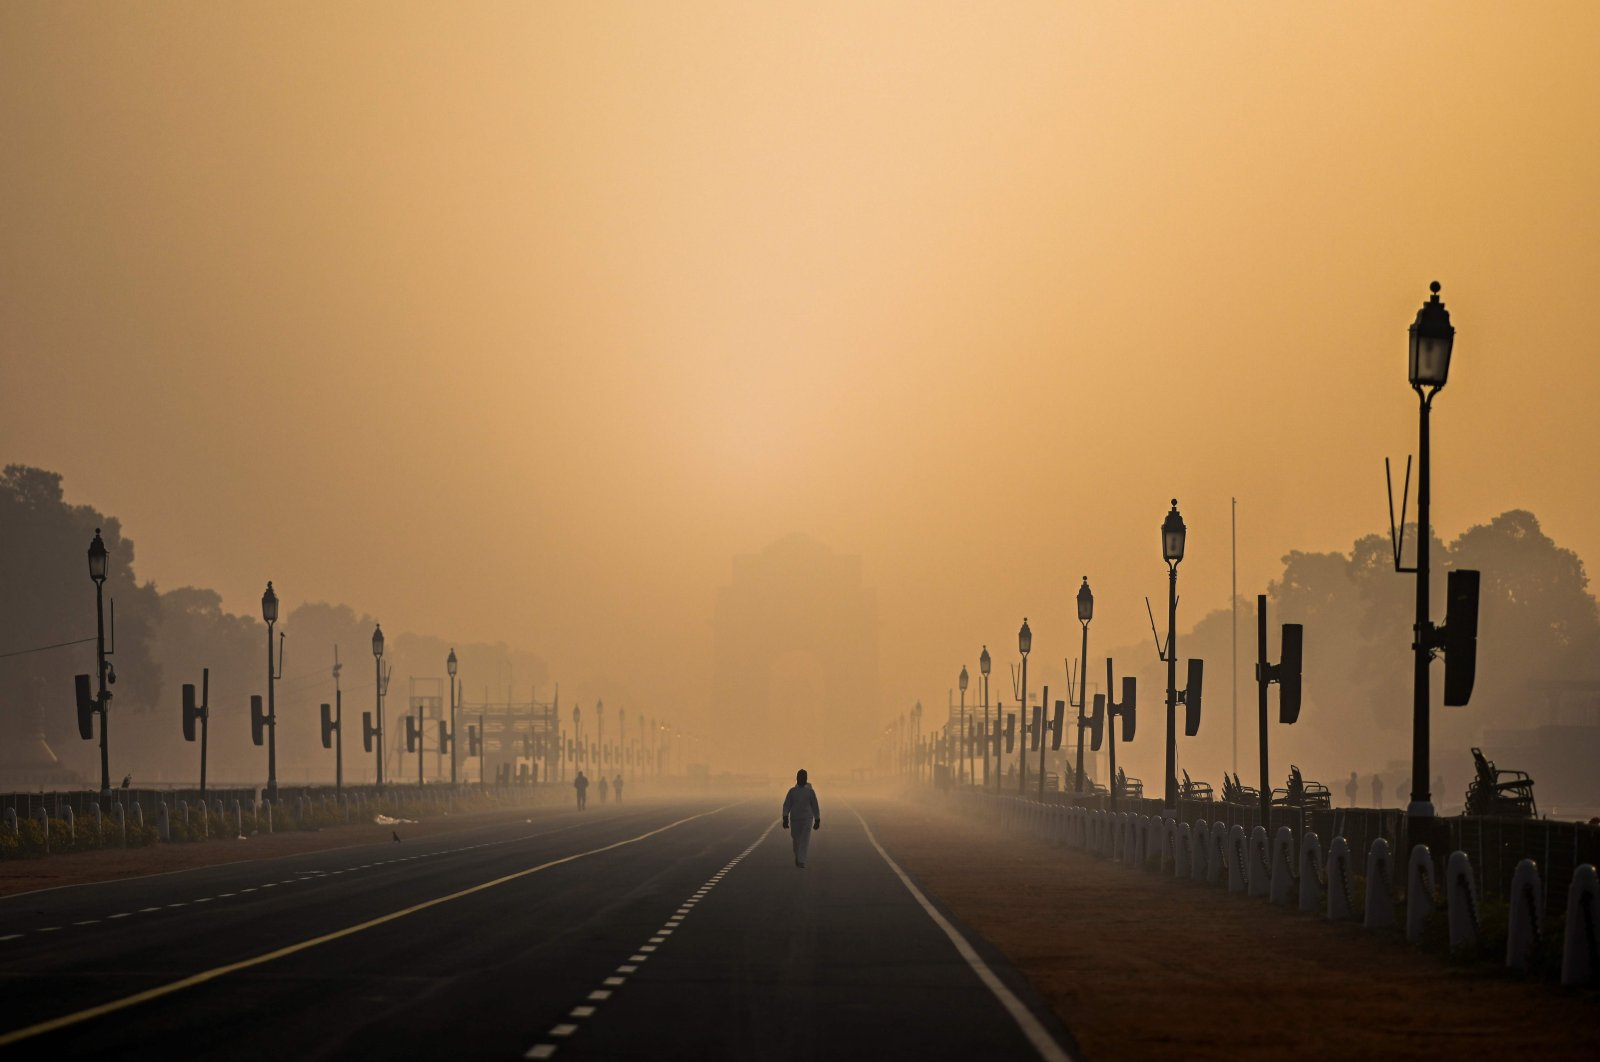 A man walks along in Rajpath as the city is blanketed under a fog caused by air pollution, New Delhi, India, Jan. 28, 2021. (AFP Photo)